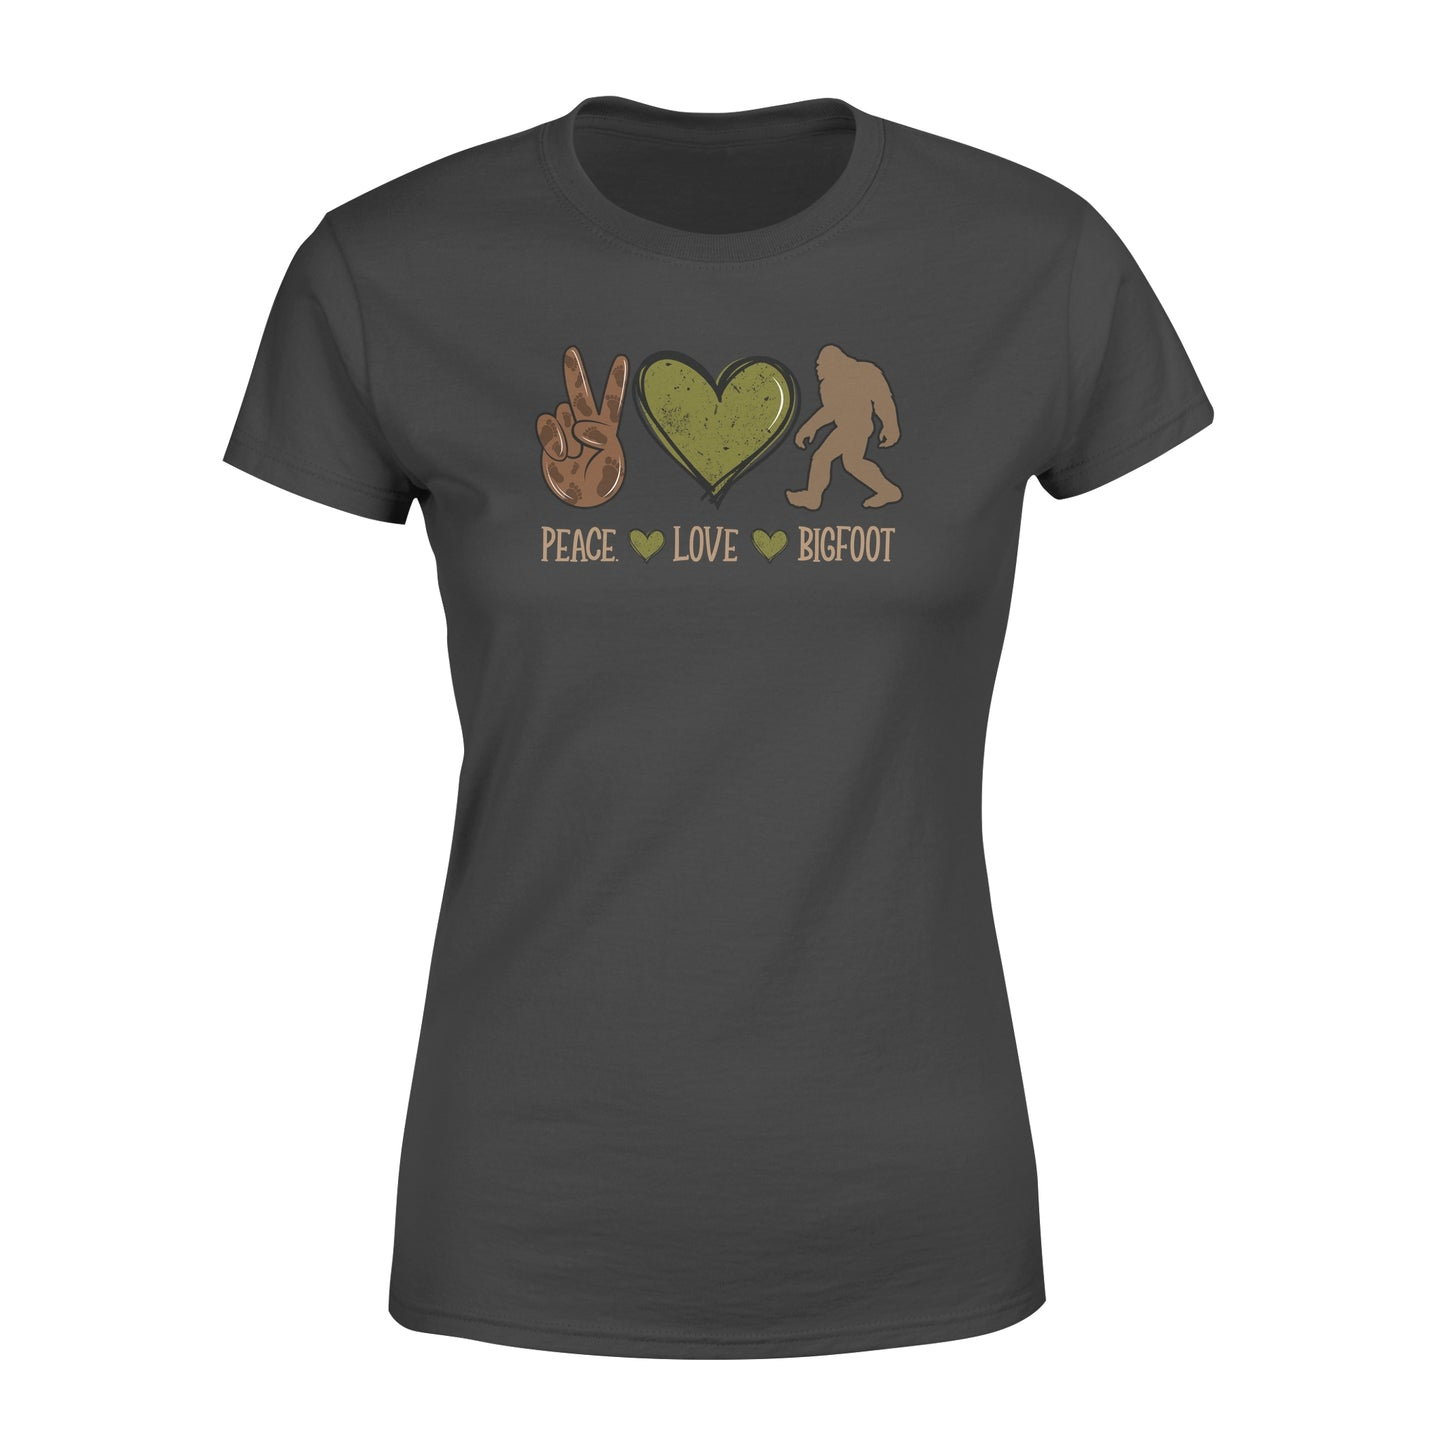 Funny Peace Love Bigfoot Slogan Shirts Sasquatch Outdoor Camping Lovers - Standard Women's T-shirt